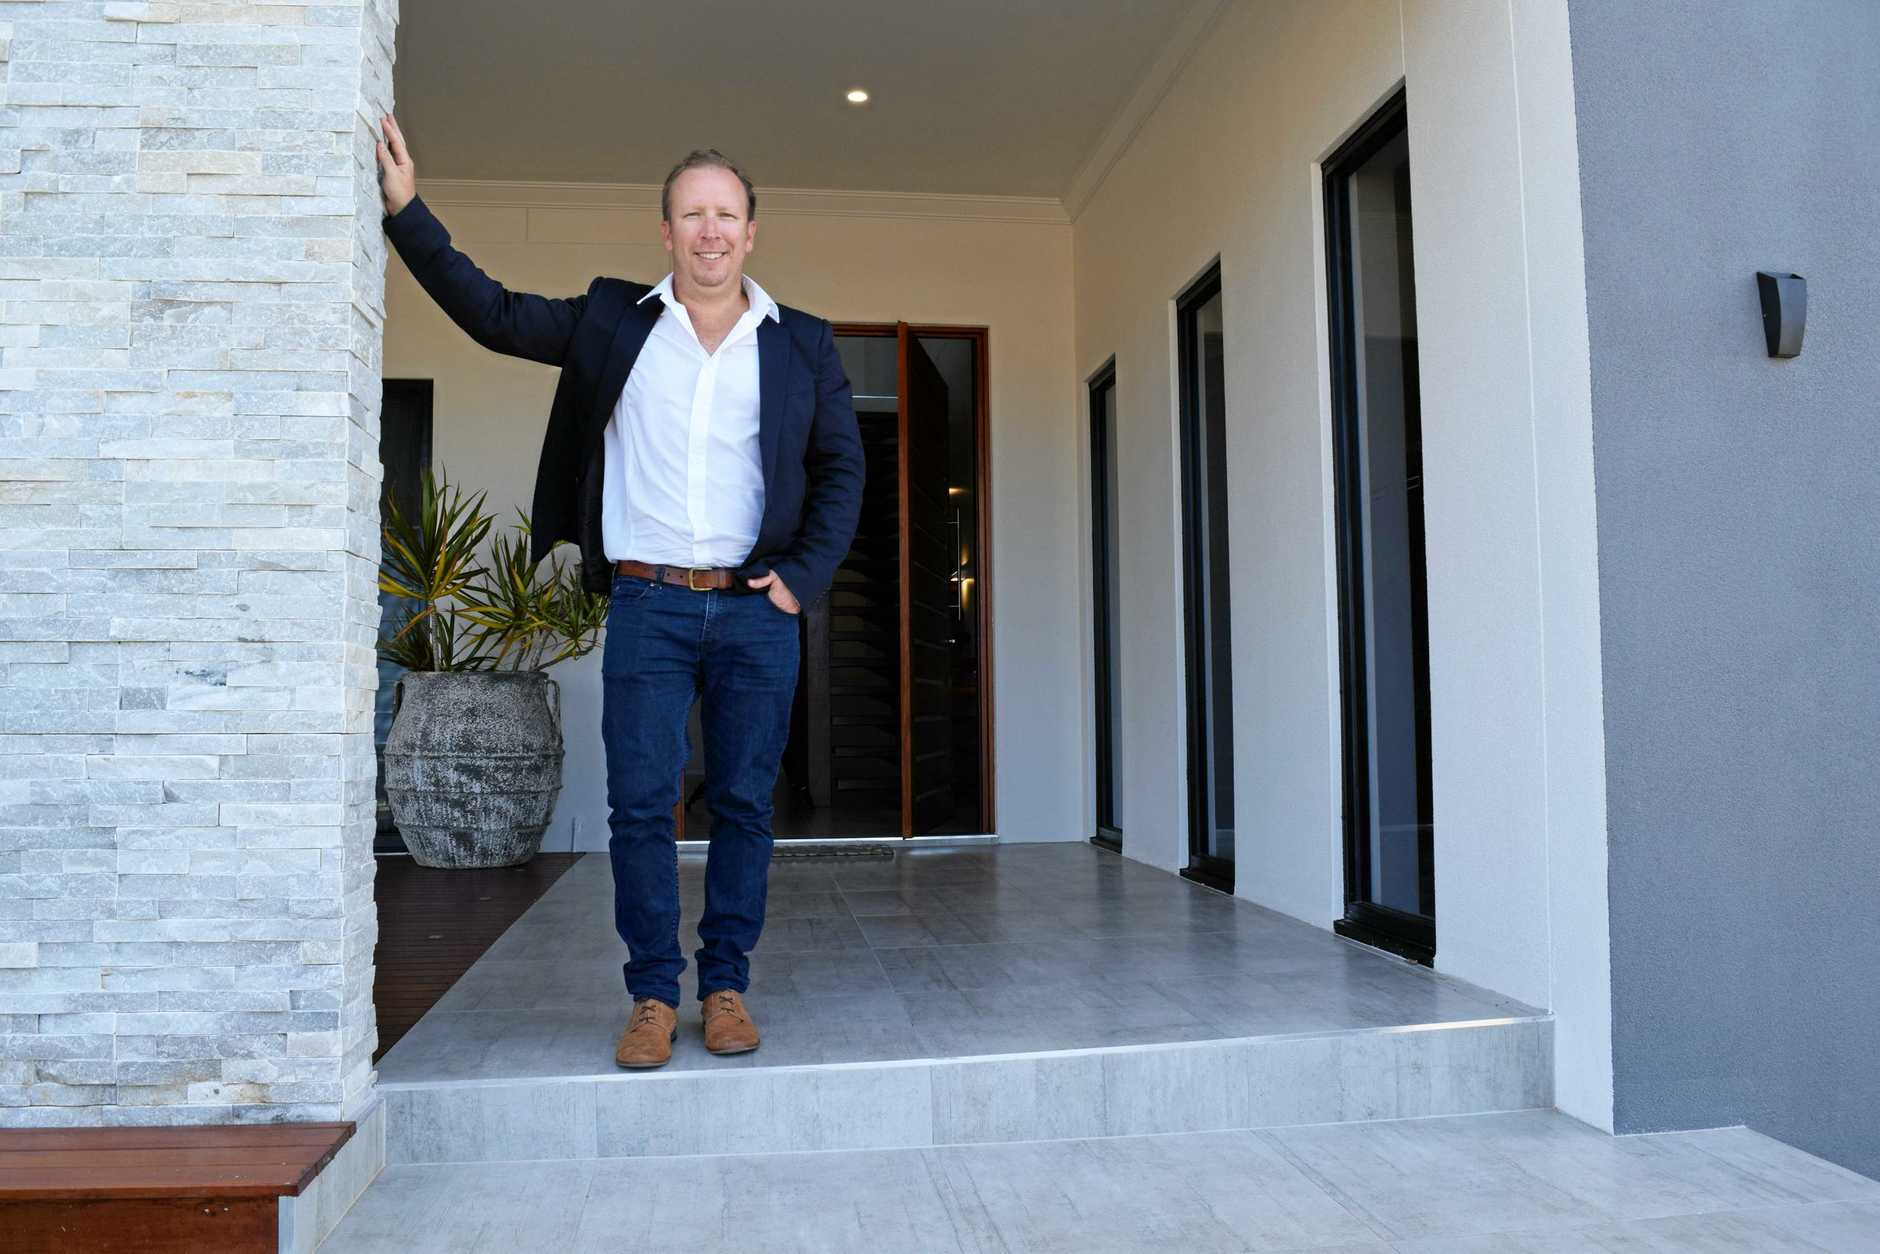 GONE BUST: Yeppoon builder and home owner Glen Finning's, pictured at his Lammermoor home in 2015, has put his business into voluntary administration.